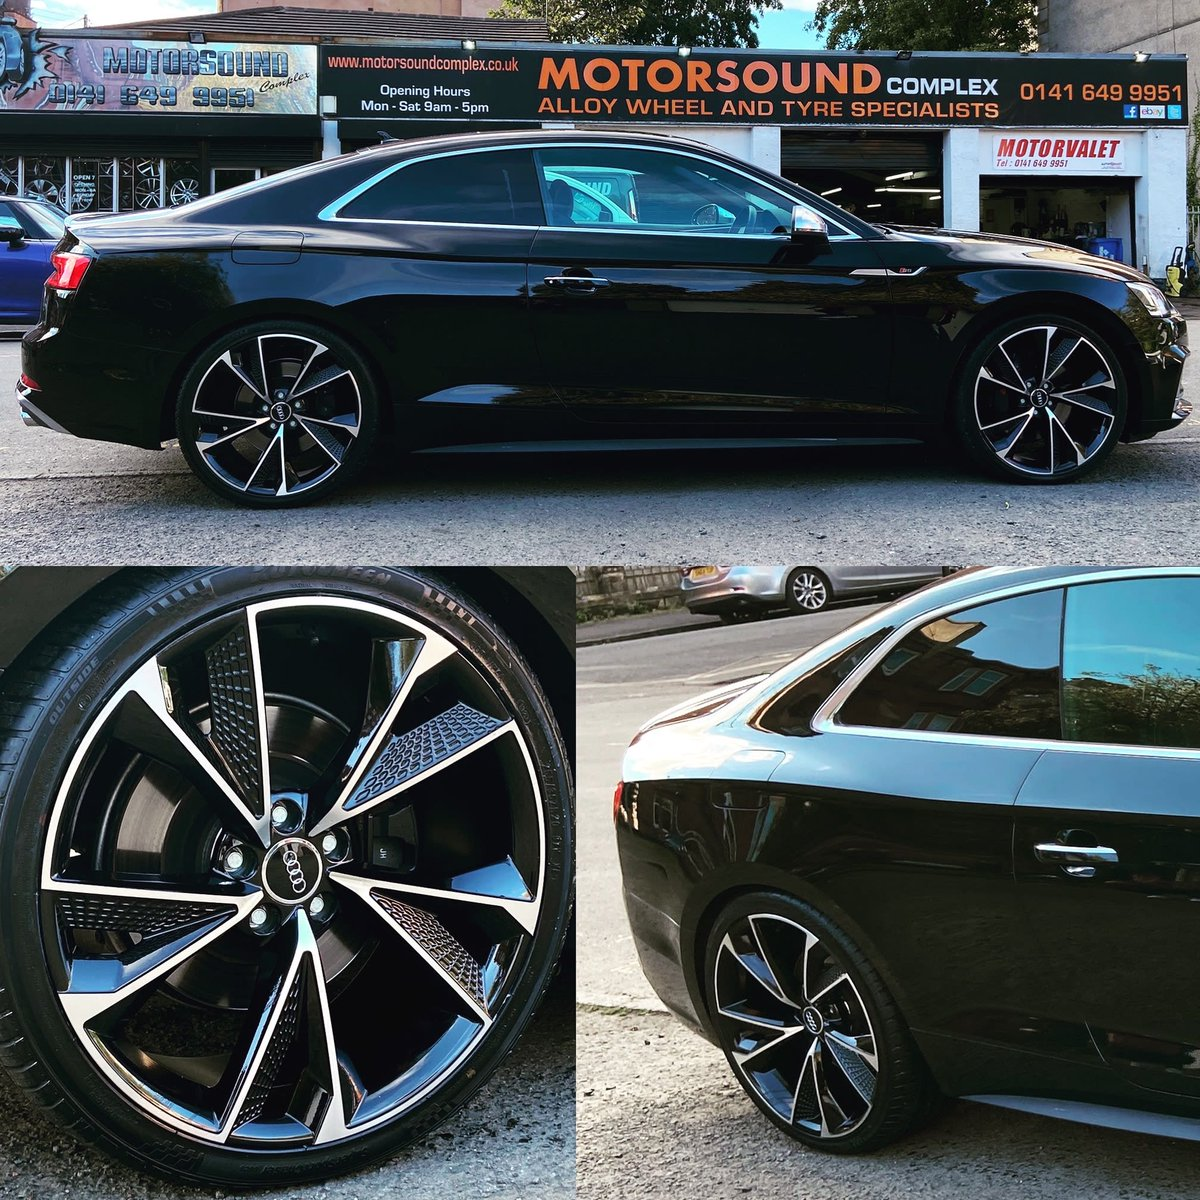 "Audi S5 fitted this afternoon with a new 20"" wheel and tyre package! #motorsoundcomplex #audis5 #20s #wheels #tyres #glasgow #scotland https://t.co/18cKLgNcOL"